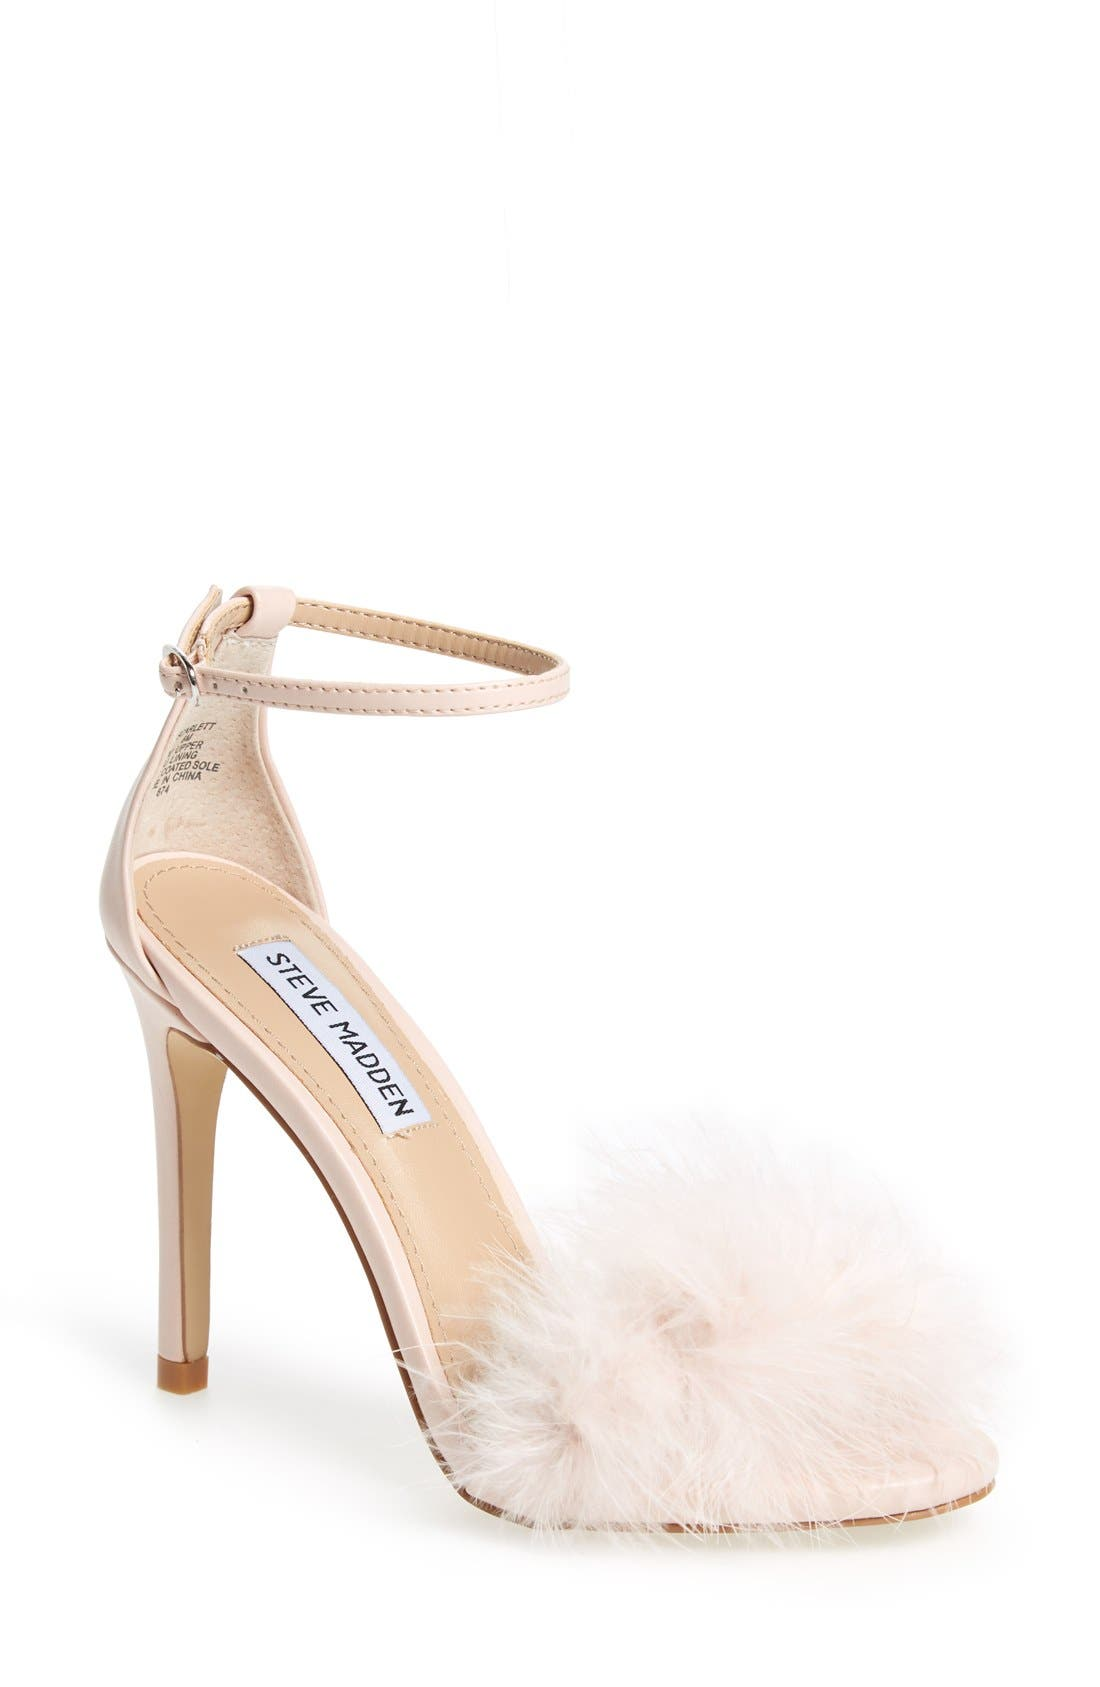 Alternate Image 1 Selected - Steve Madden 'Scarlett' Marabou Evening Sandal (Women)